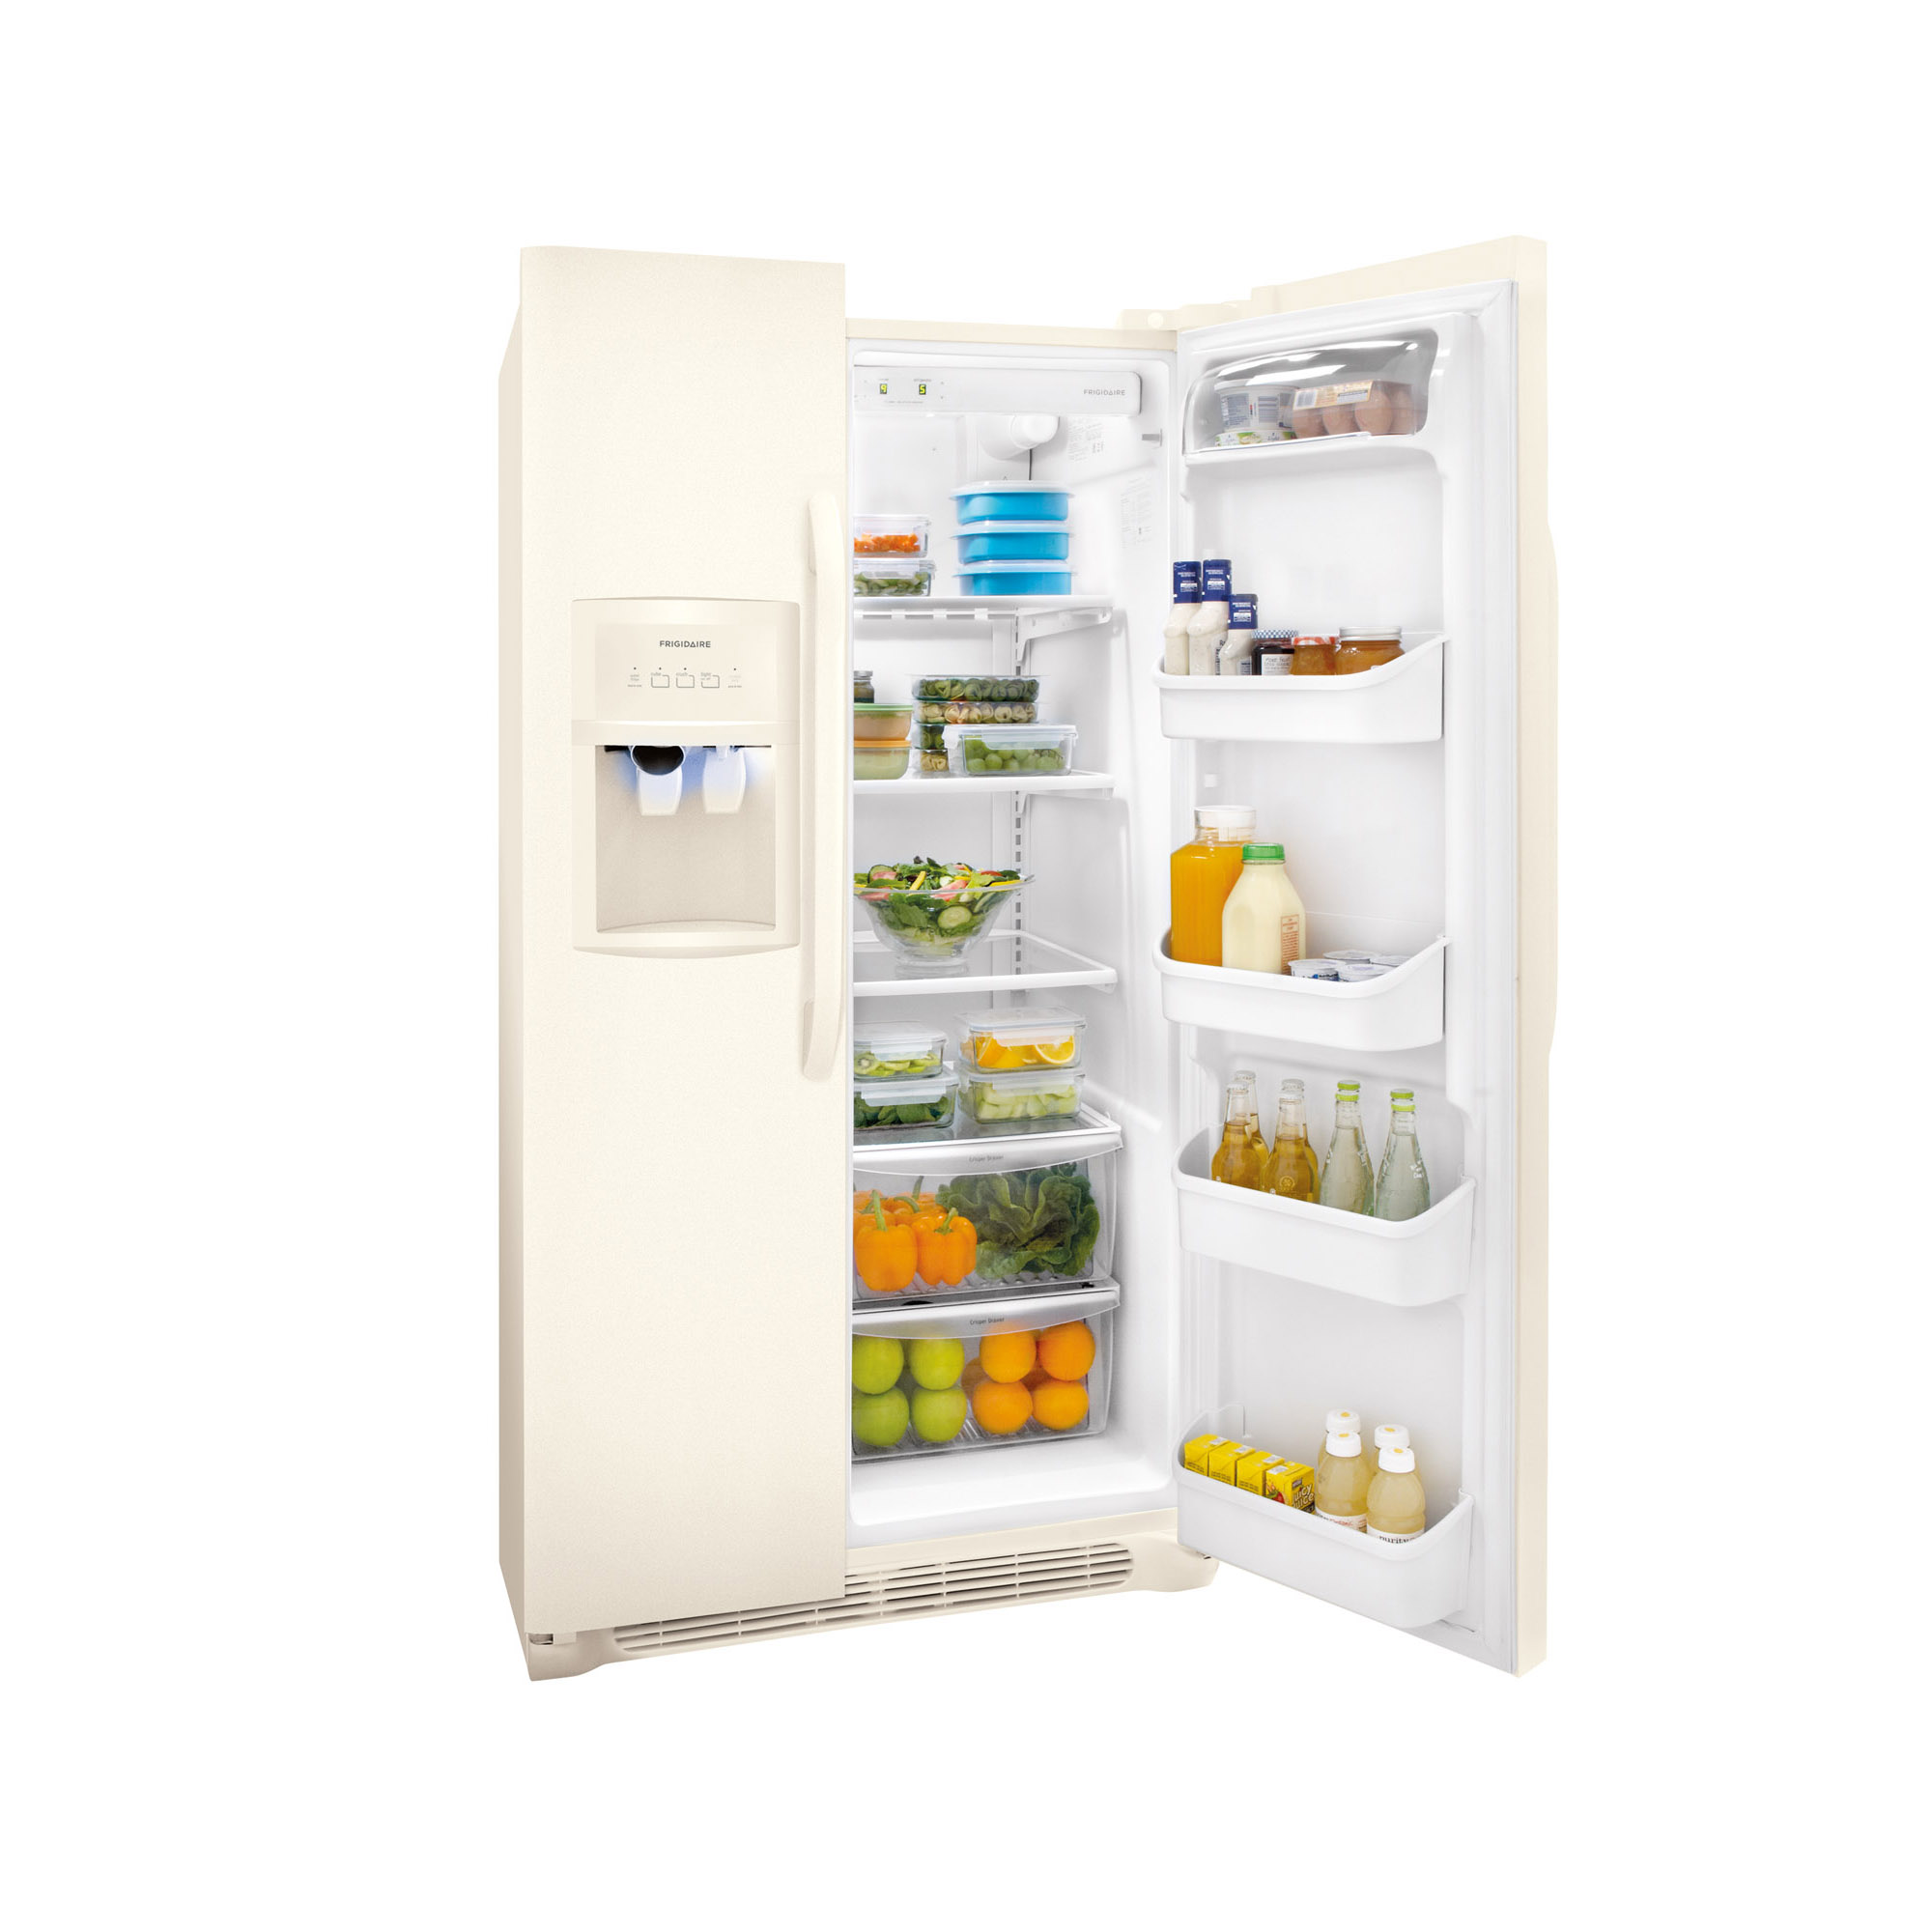 Frigidaire 25.5 cu. ft. Side-by-Side Refrigerator - Bisque